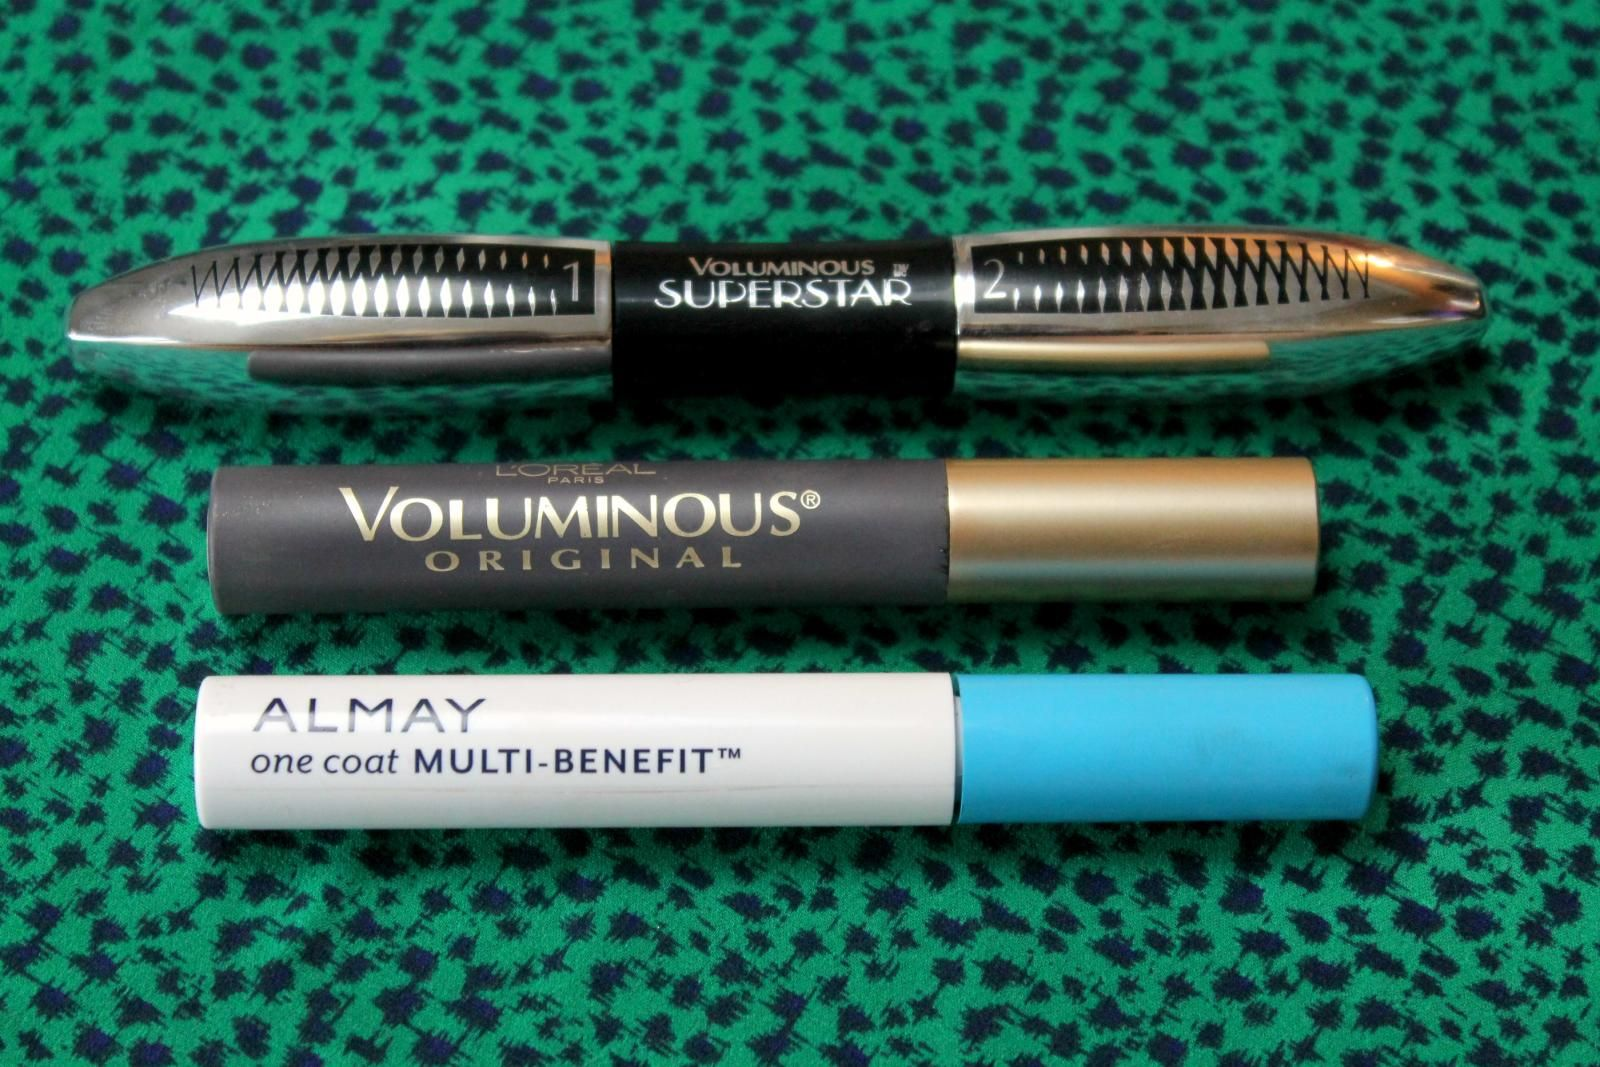 These 3 Drugstore Mascaras Prove You Don't Have to Shell Out Major Cash on Fancy Formulas. Because Lord knows I shell it out on everything else…